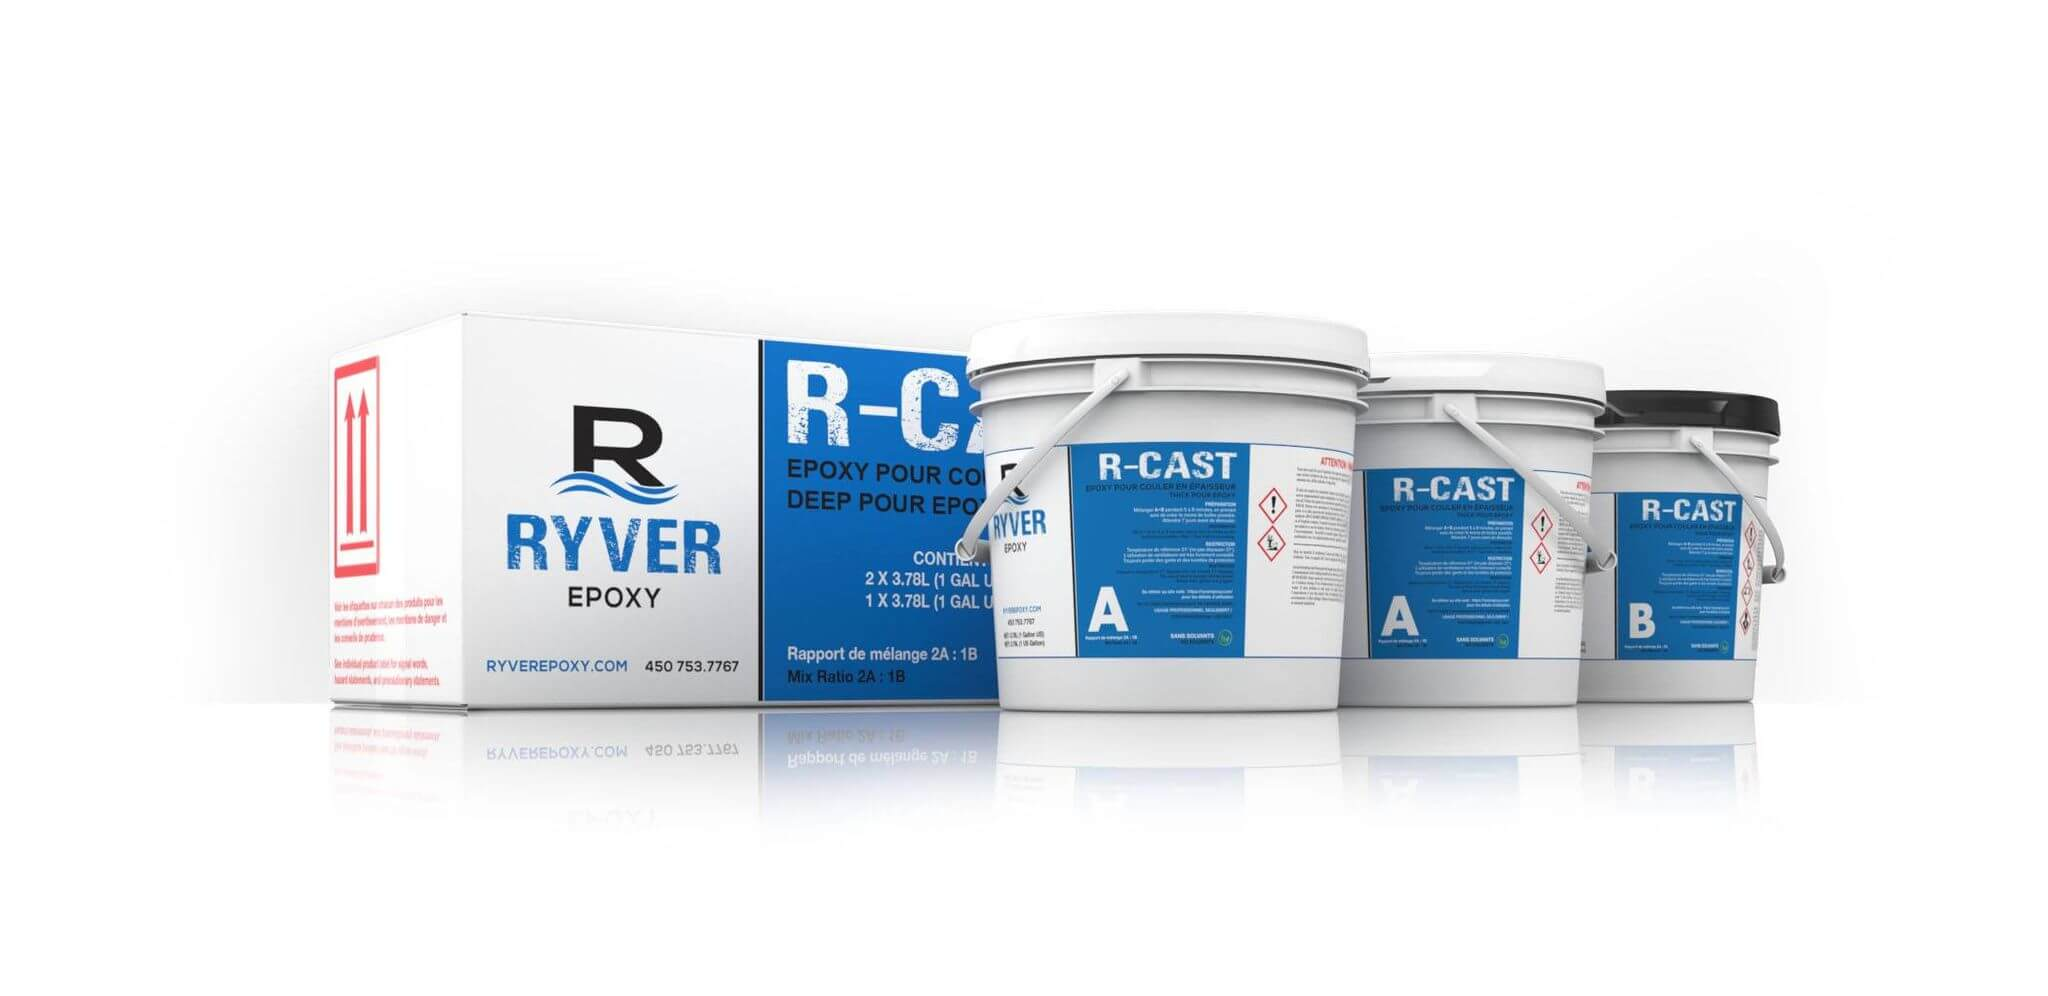 R-Cast 3 gallons ryver epoxy